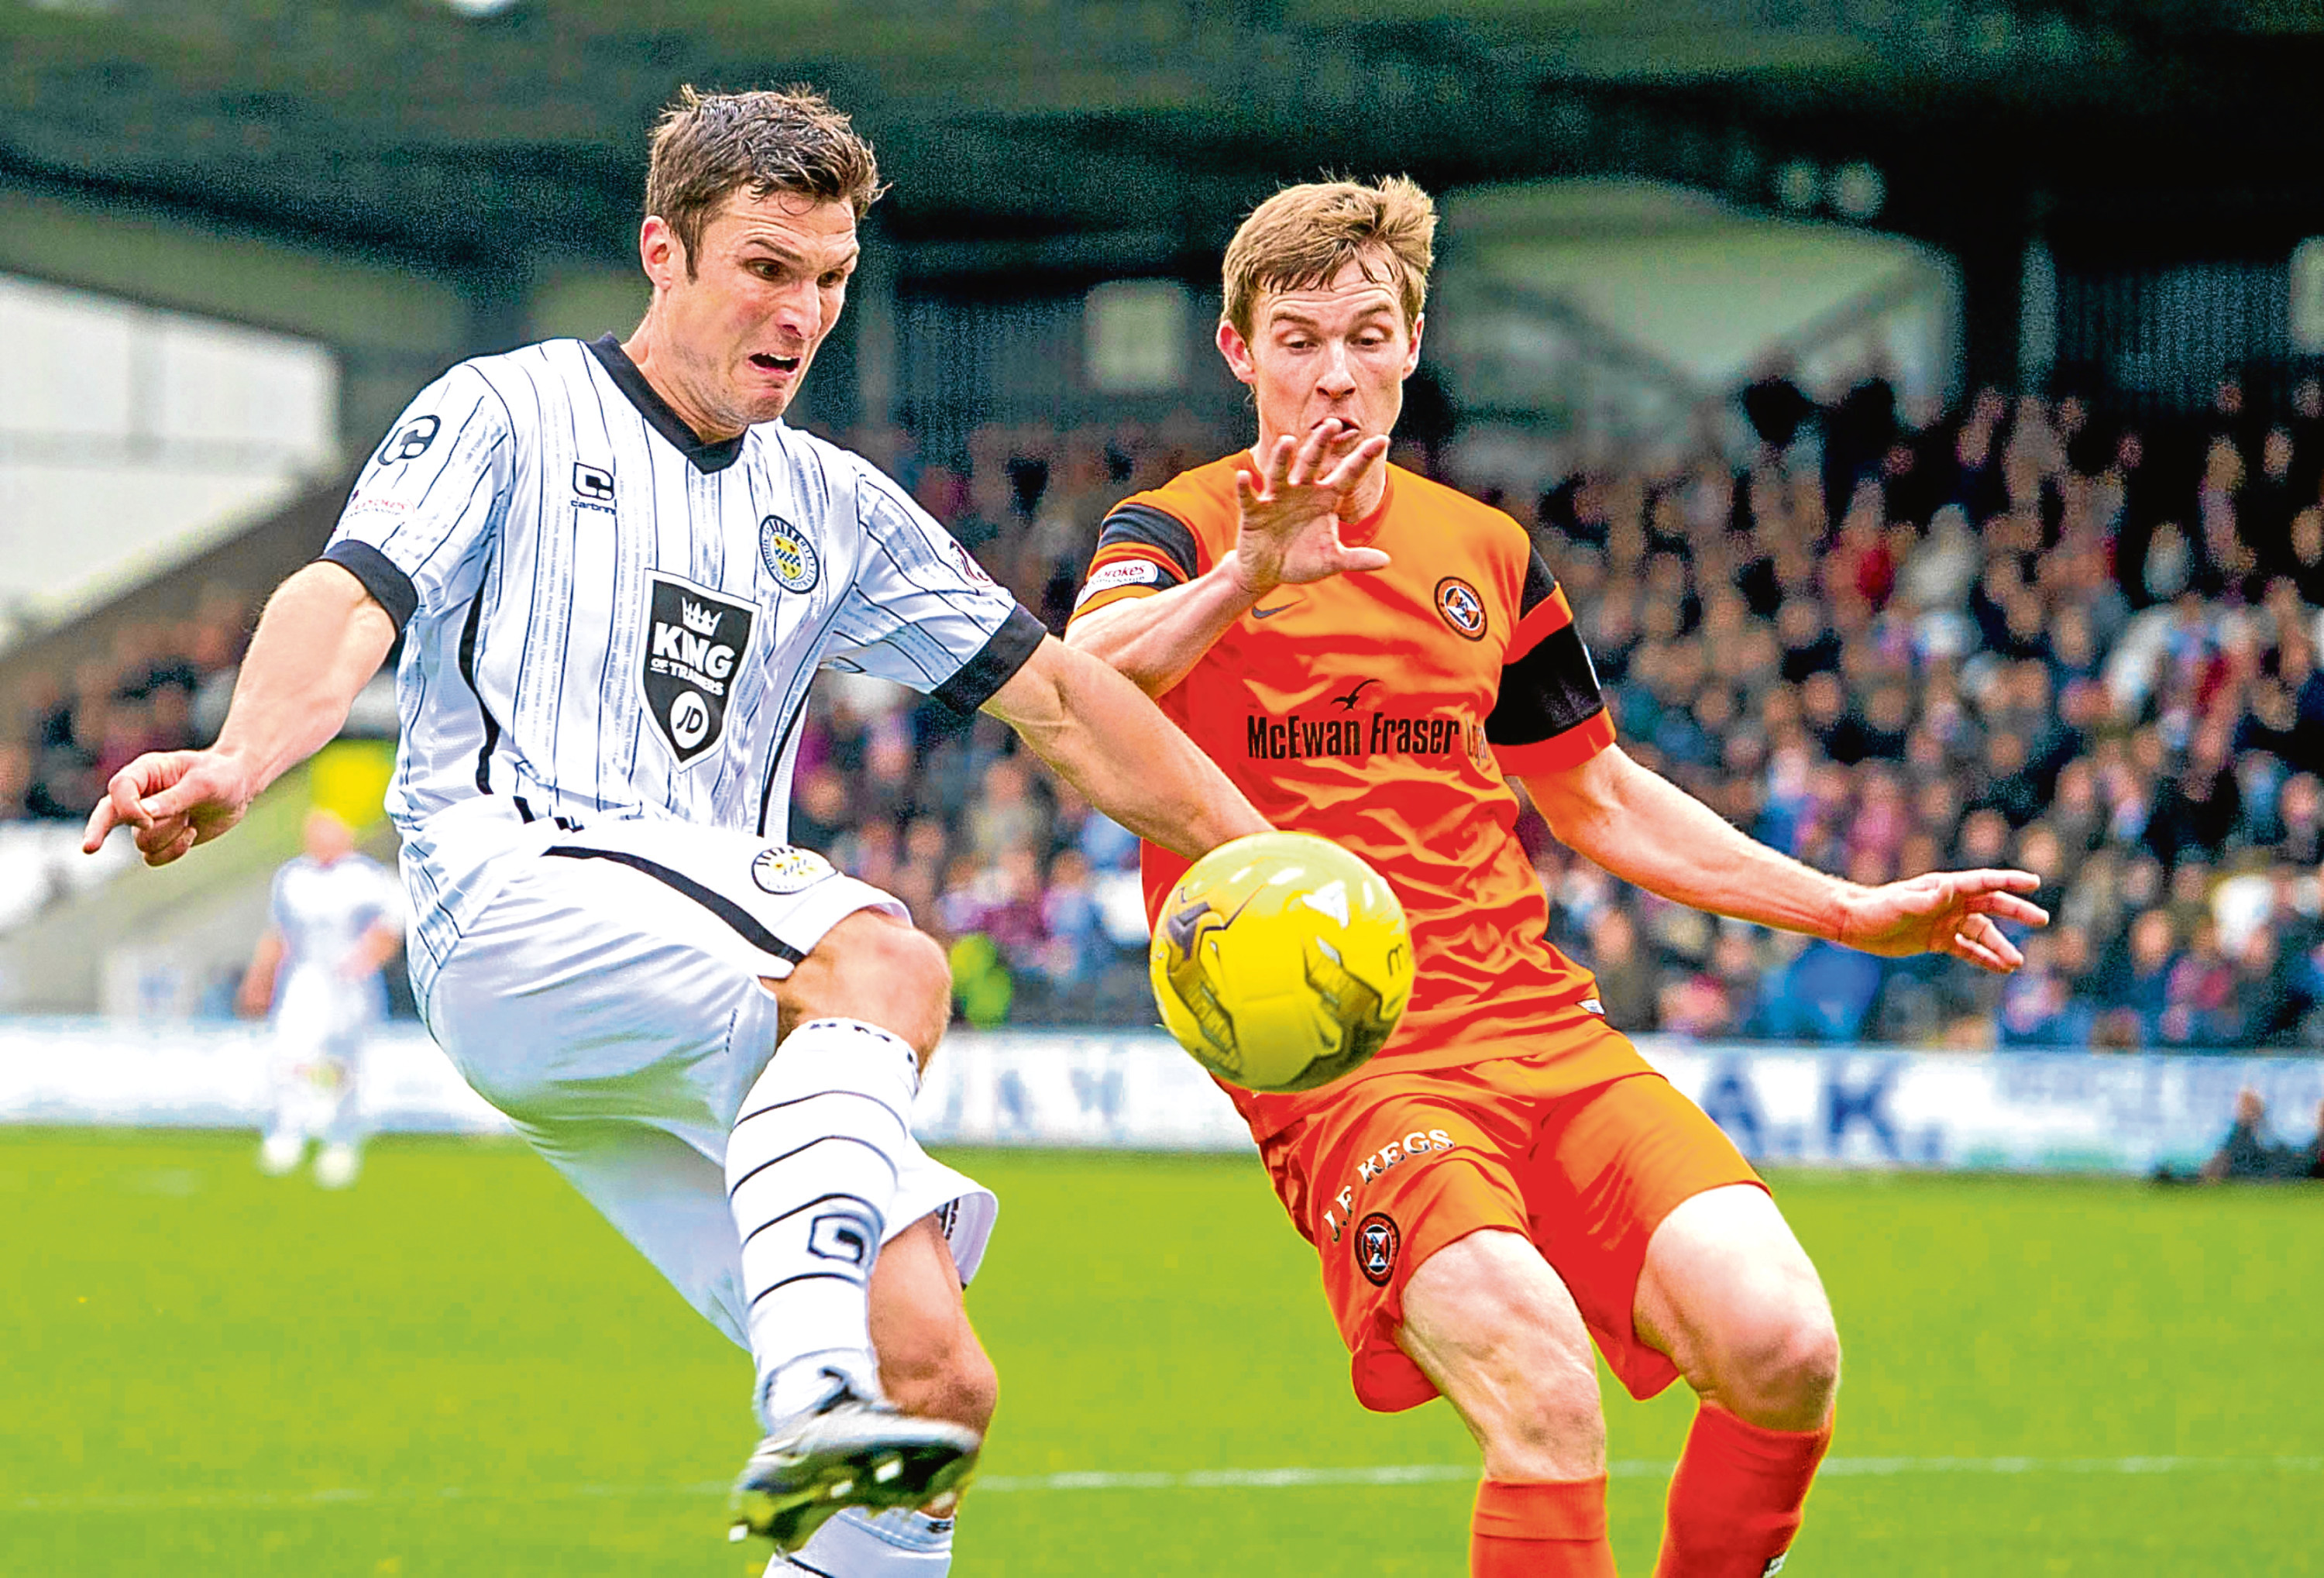 Full-back Paul Dixon is Dundee United's only injury absentee, with all other players having reported in fit for duty.